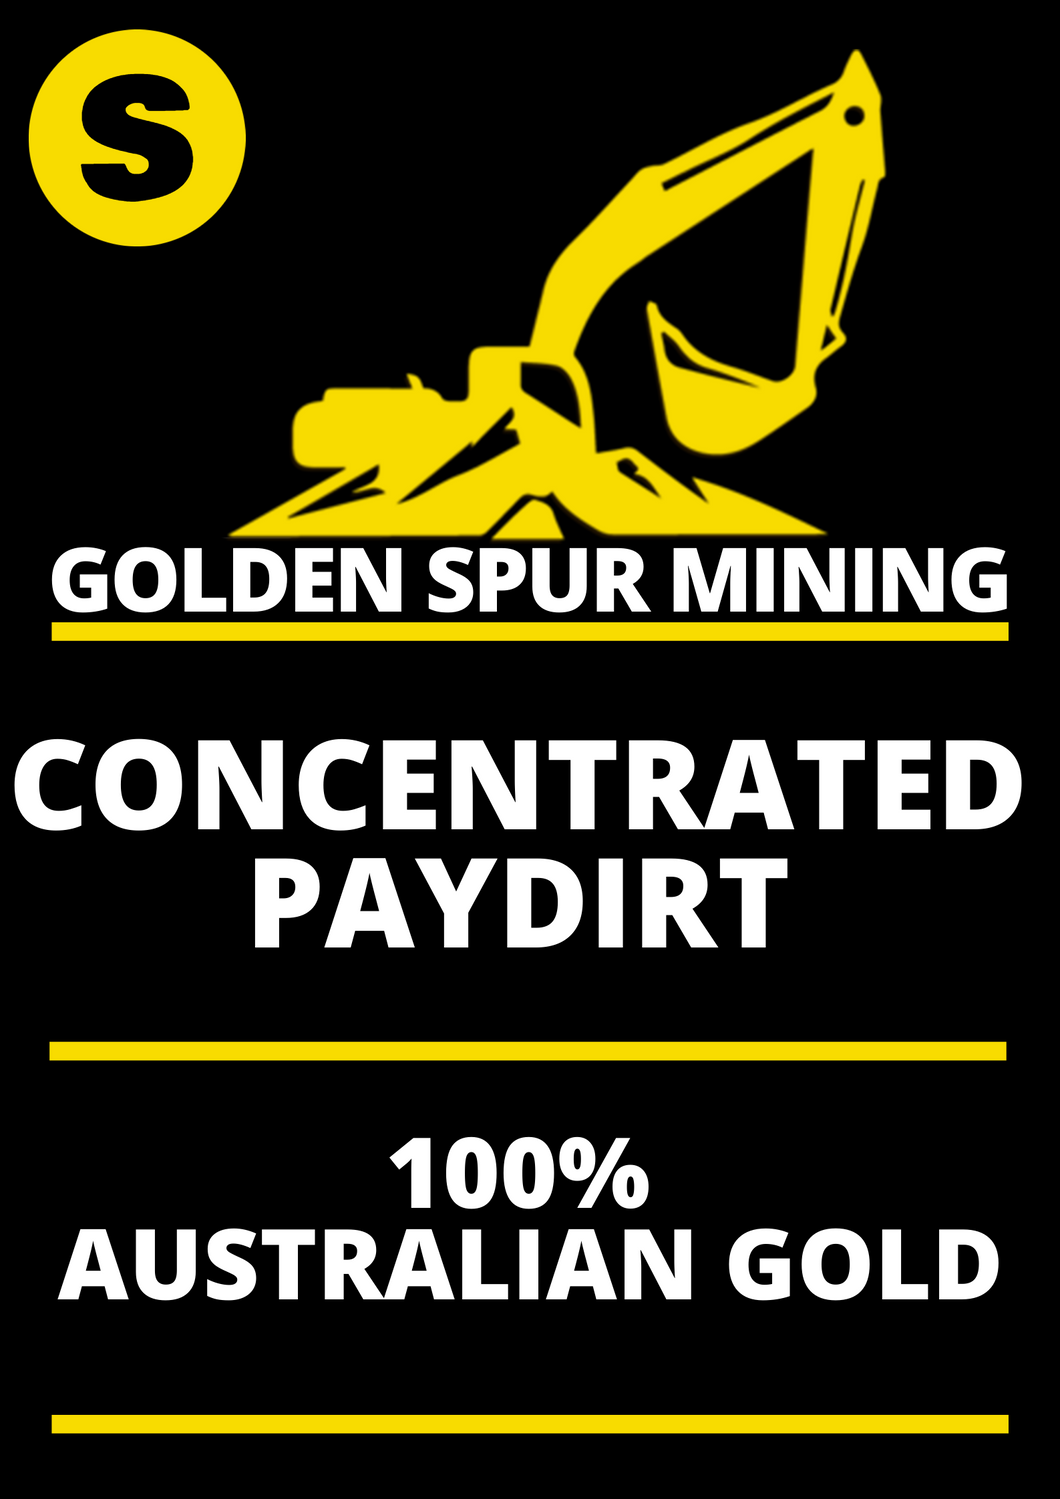 Golden Spur Small 150g Gold Pay Dirt Best Return Paydirt in Oz Australian Licenced Family Business Quick Delivery Full Support